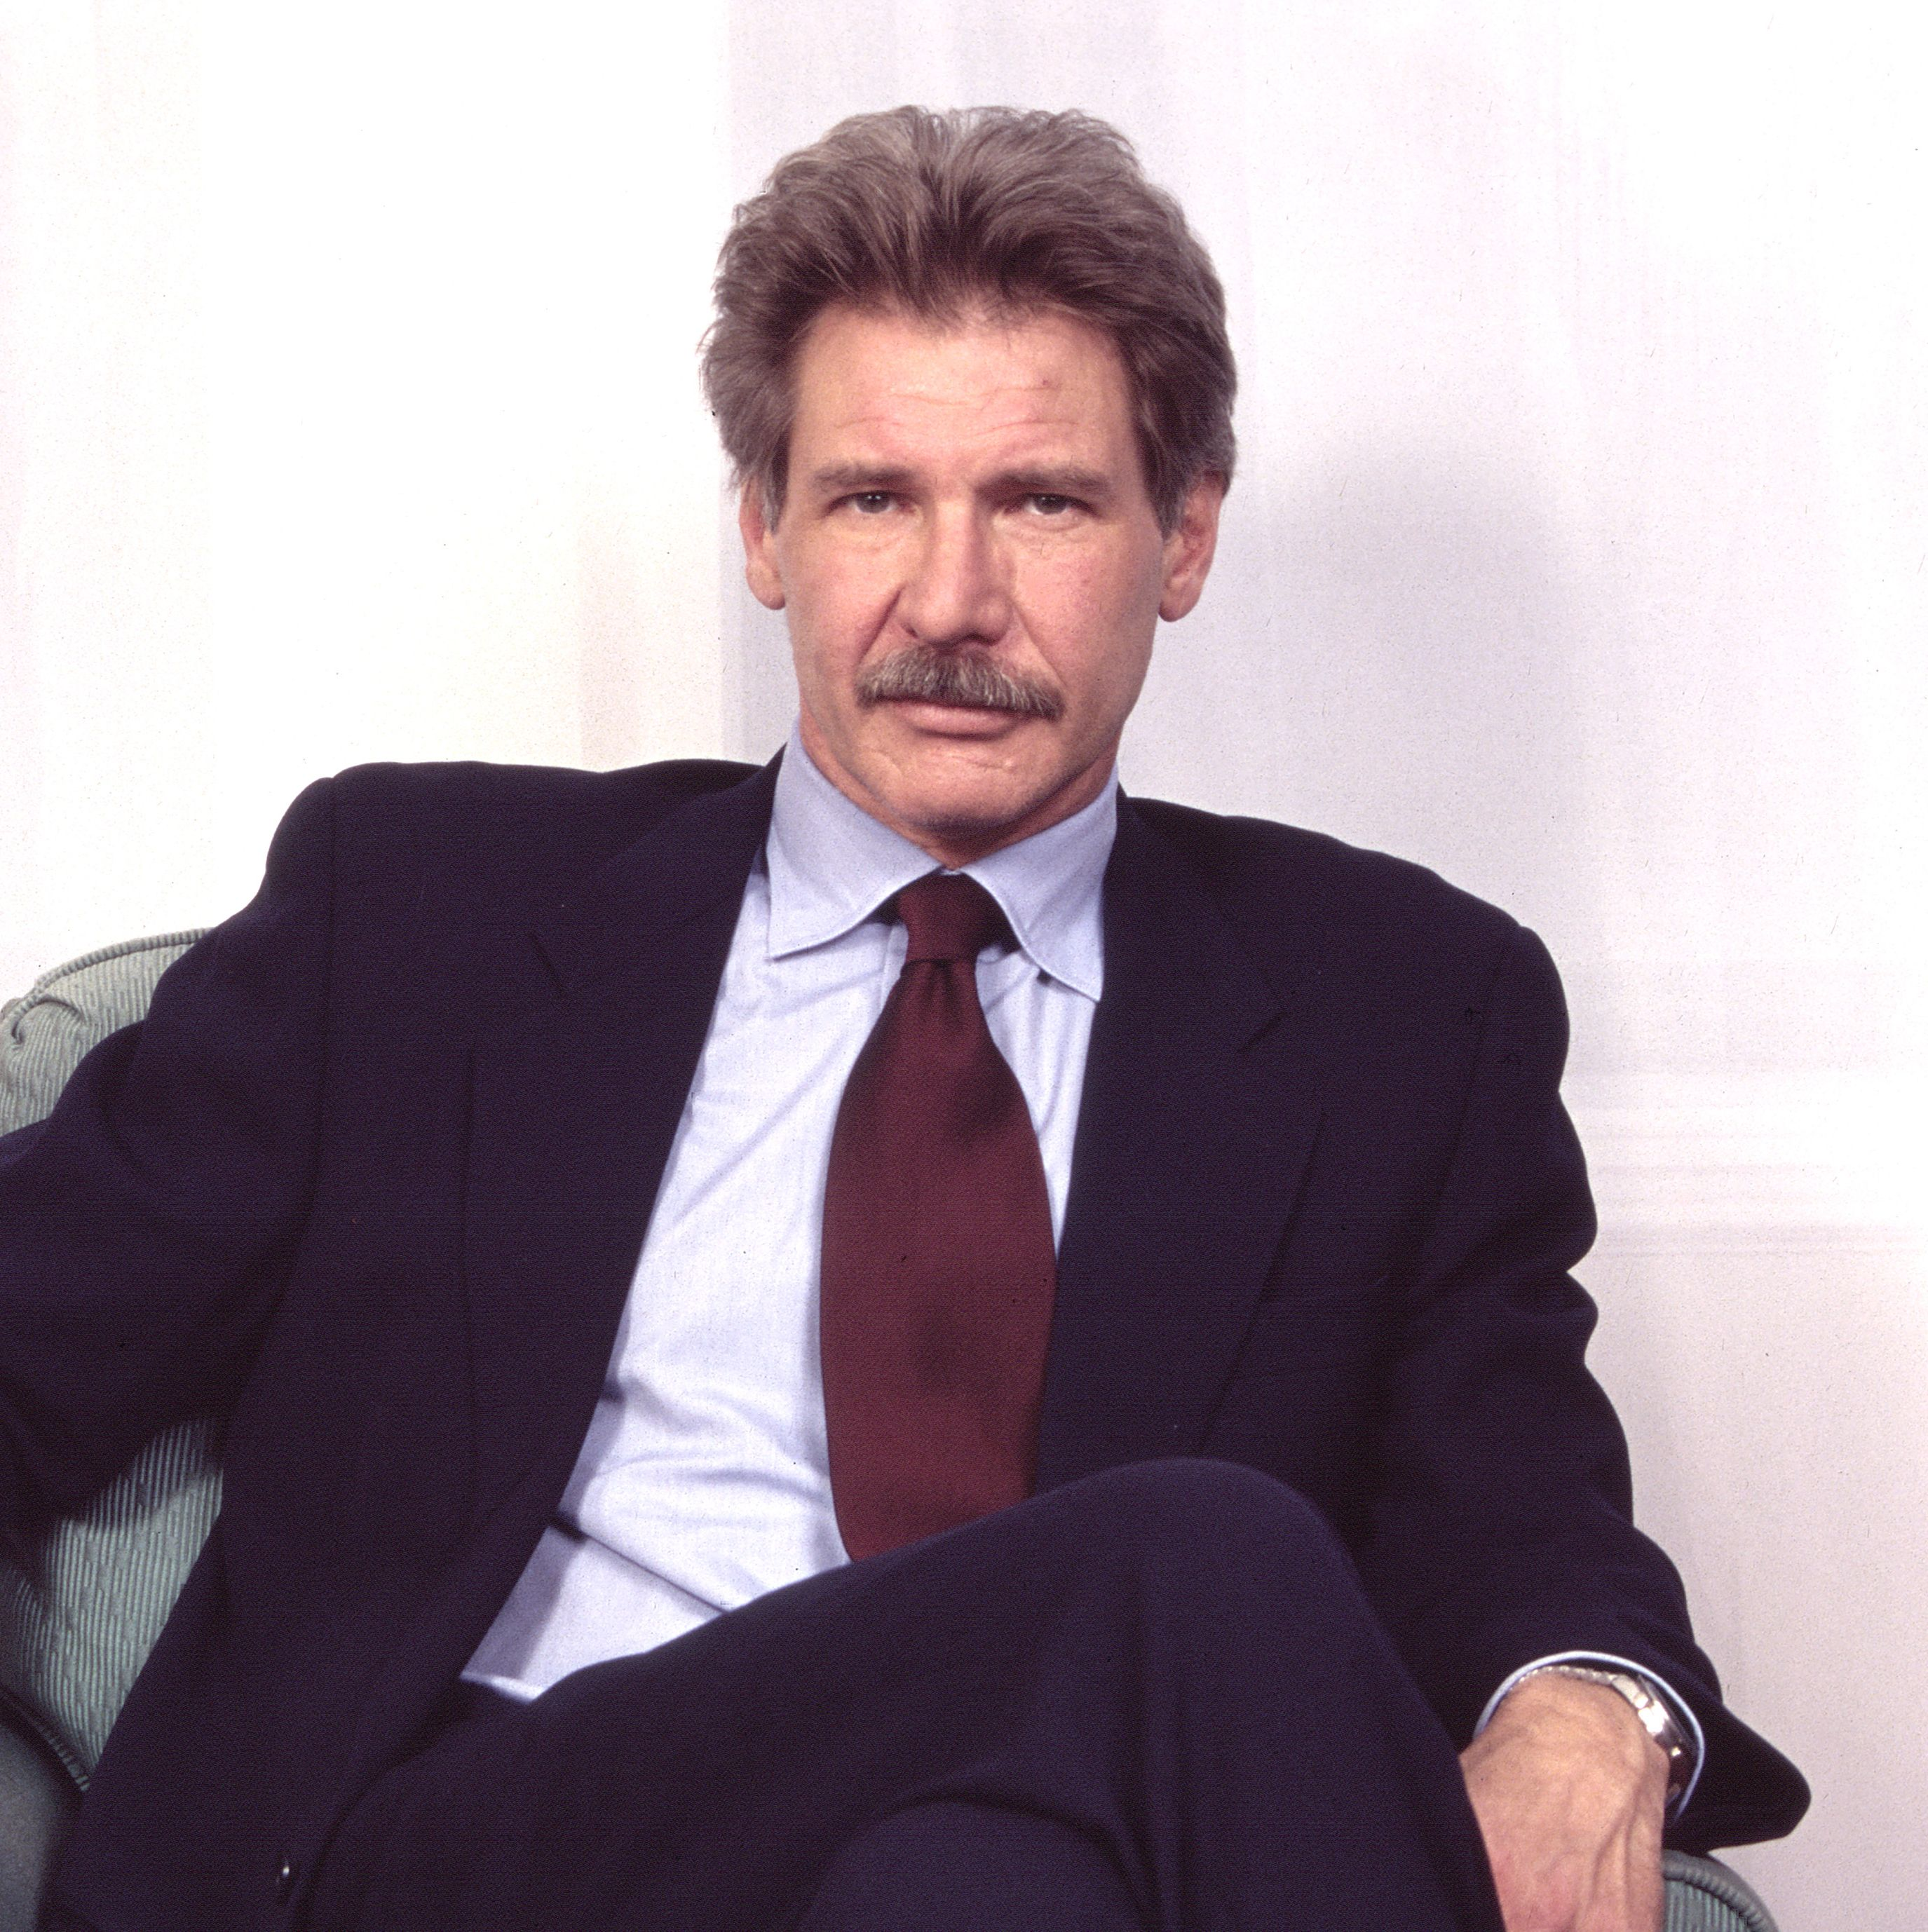 1996: Harrison Ford There was a moment in the mid-'90s where actor Harrison Ford had a mustache phase that was very well-received.